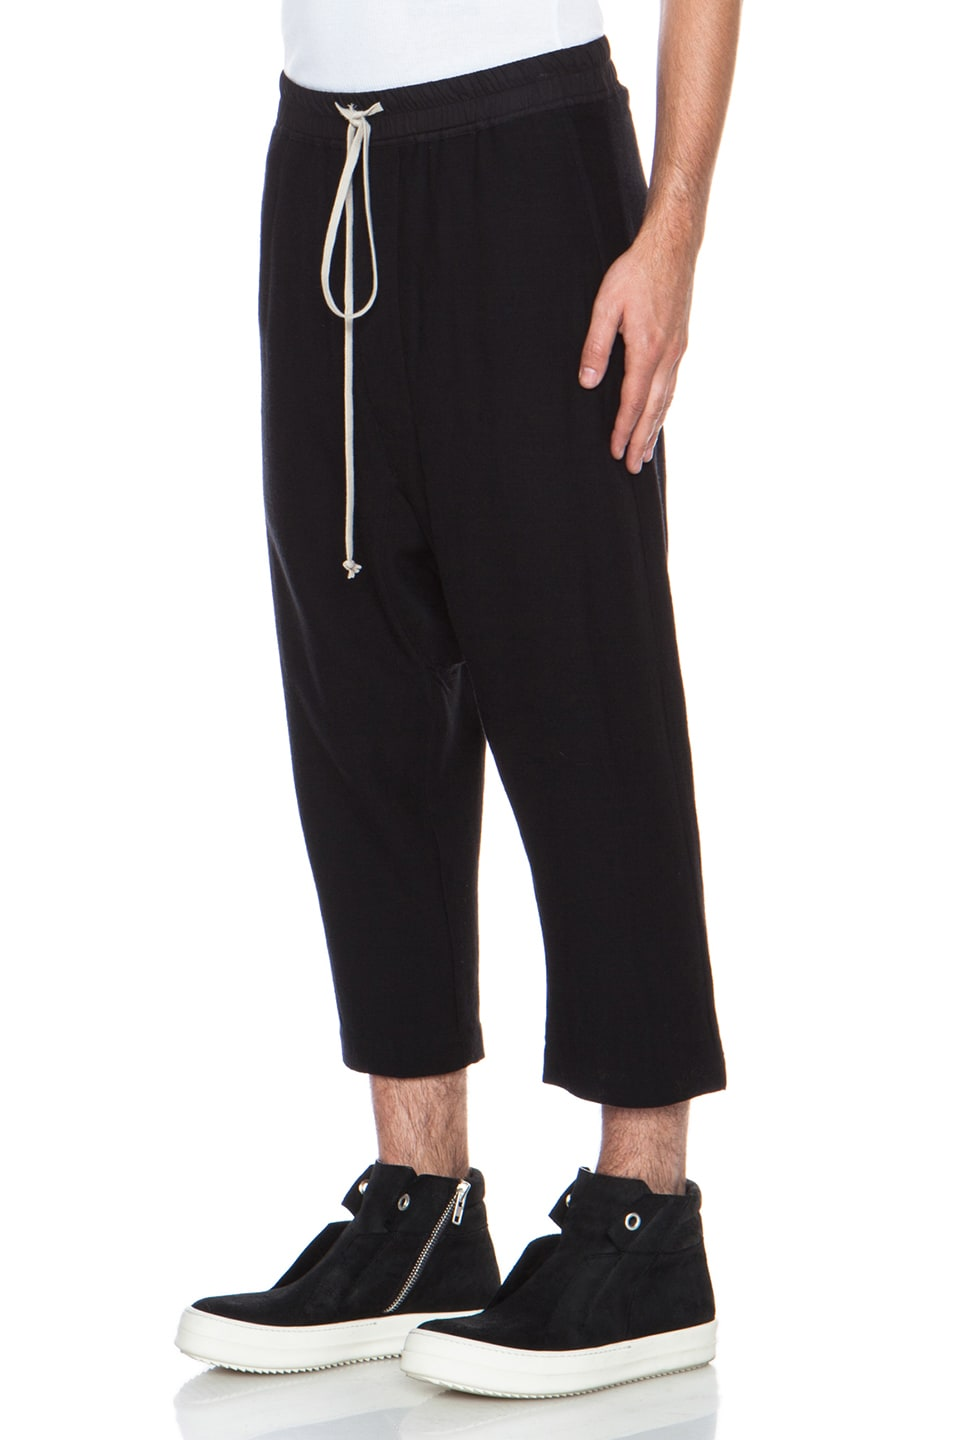 Clearance High Quality Drawstring Cropped pants - Black Rick Owens Buy Cheap Inexpensive Best Sale Cheap Online Cheap Sale Official Sale Cheap Price ud5XTwOaw